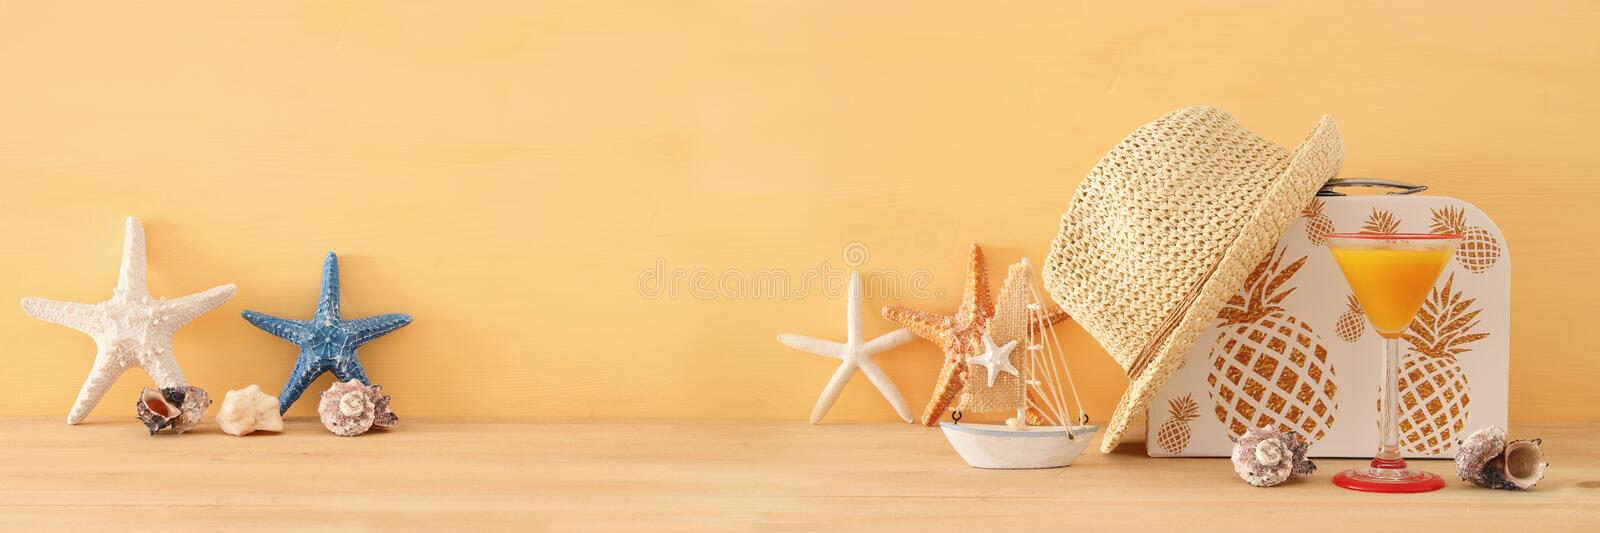 Nautical, vacation and travel banner with sea life style objects over wooden table. Nautical, vacation and travel banner with sea life style objects over wooden stock image